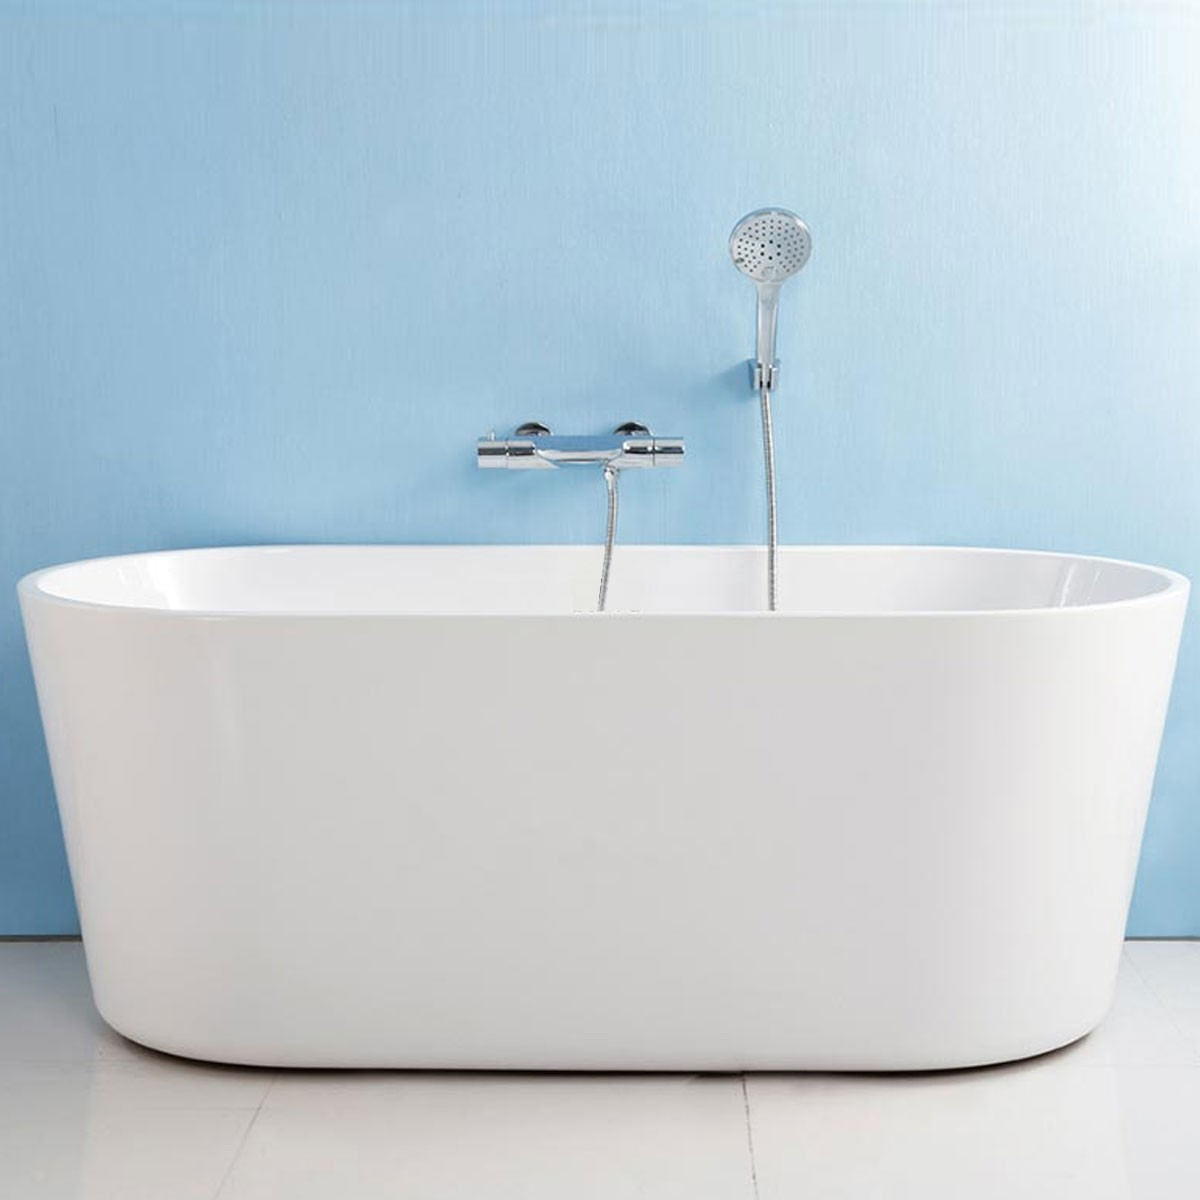 62 In White Acrylic Seamless Freestanding Bathtub (DK-AT-96675 ...